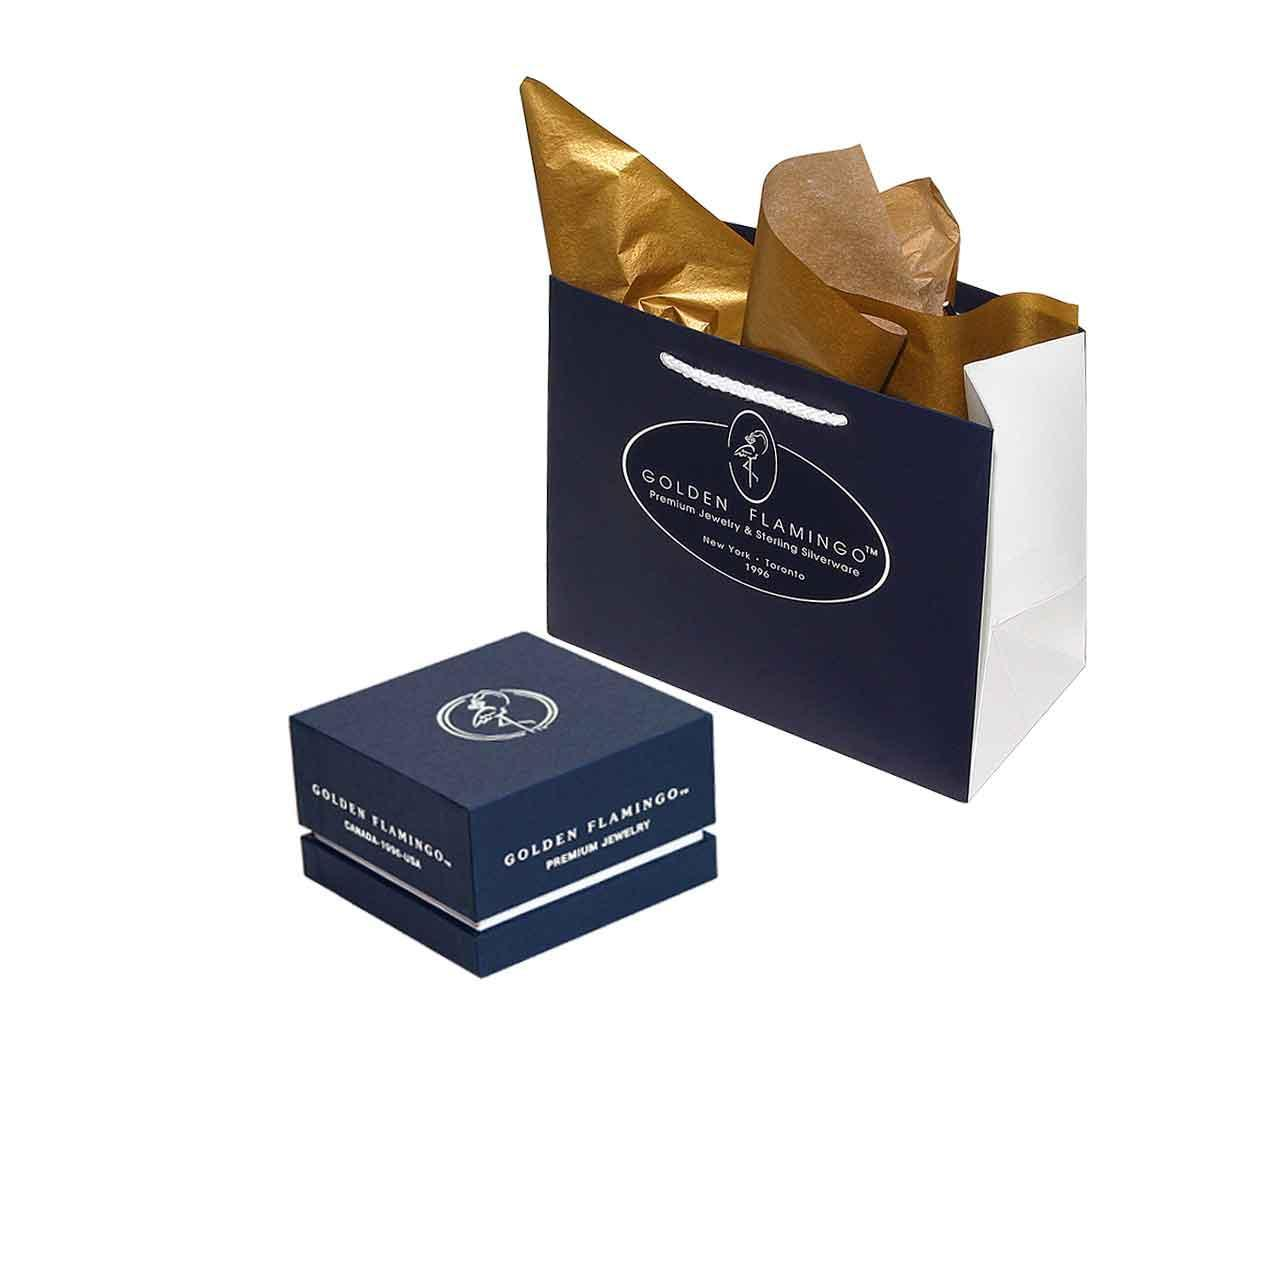 Boutique-quality gift box for gold earrings.